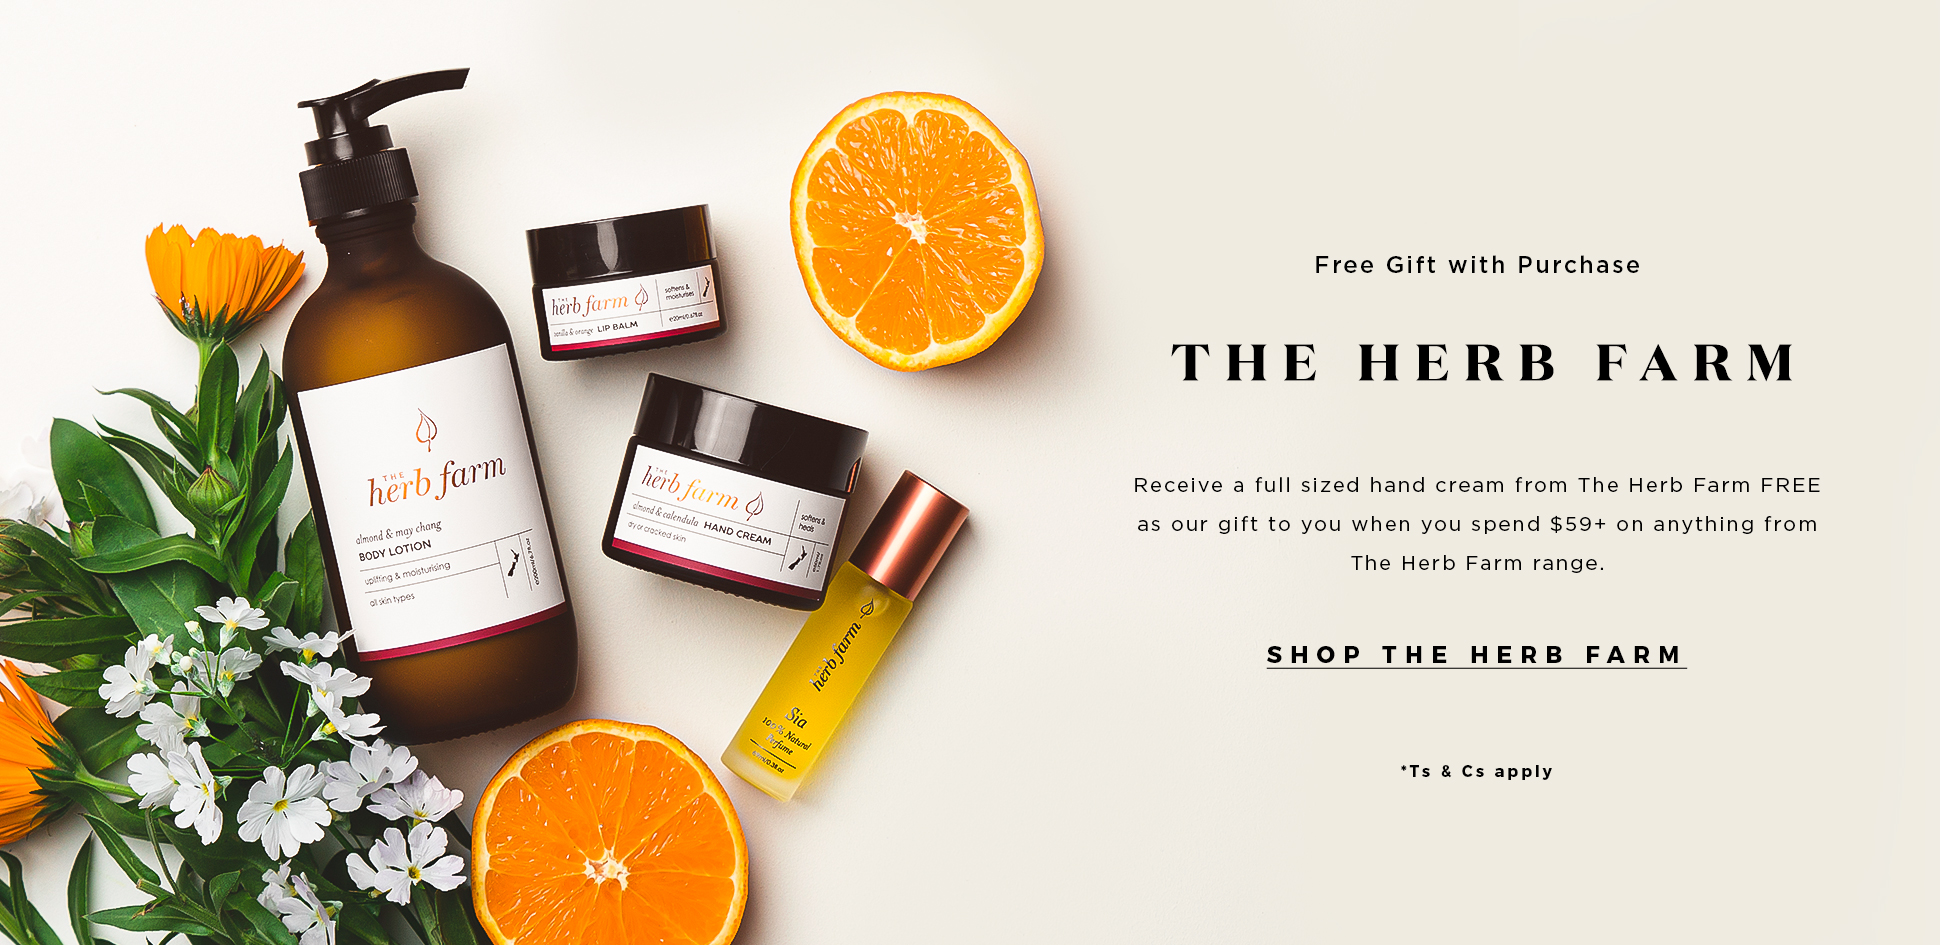 The Herb Farm Hand Cream Gift With Purchase